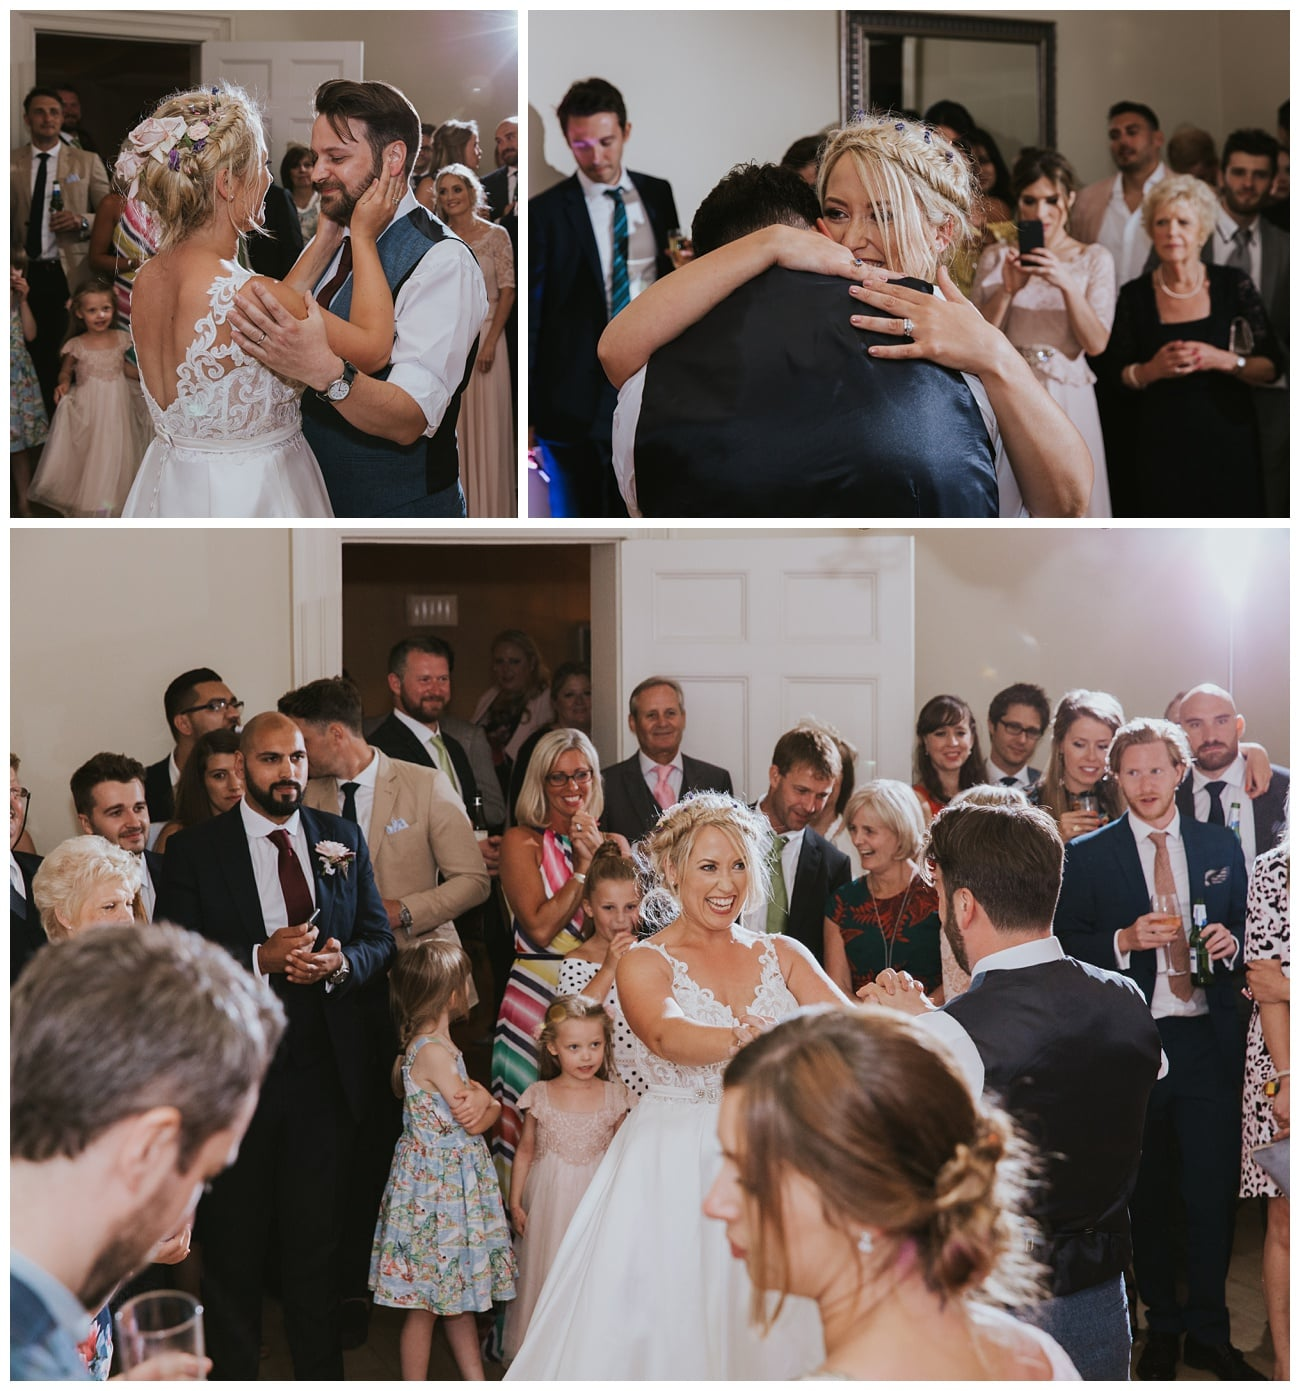 The first dance of the bride and groom at That Amazing Place